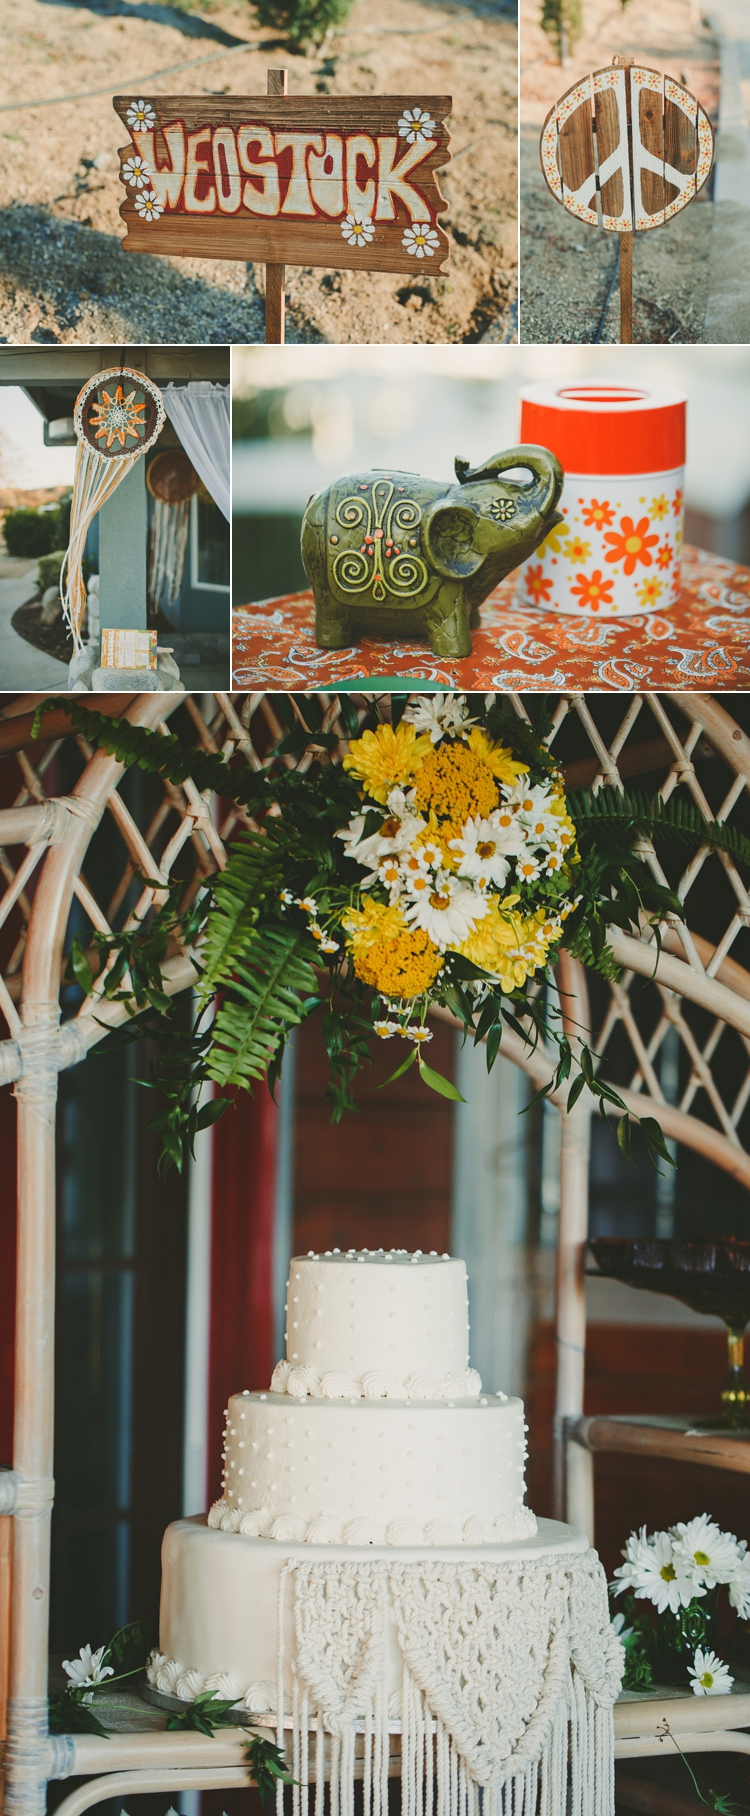 woodstock-inspired-wedding-photos-25